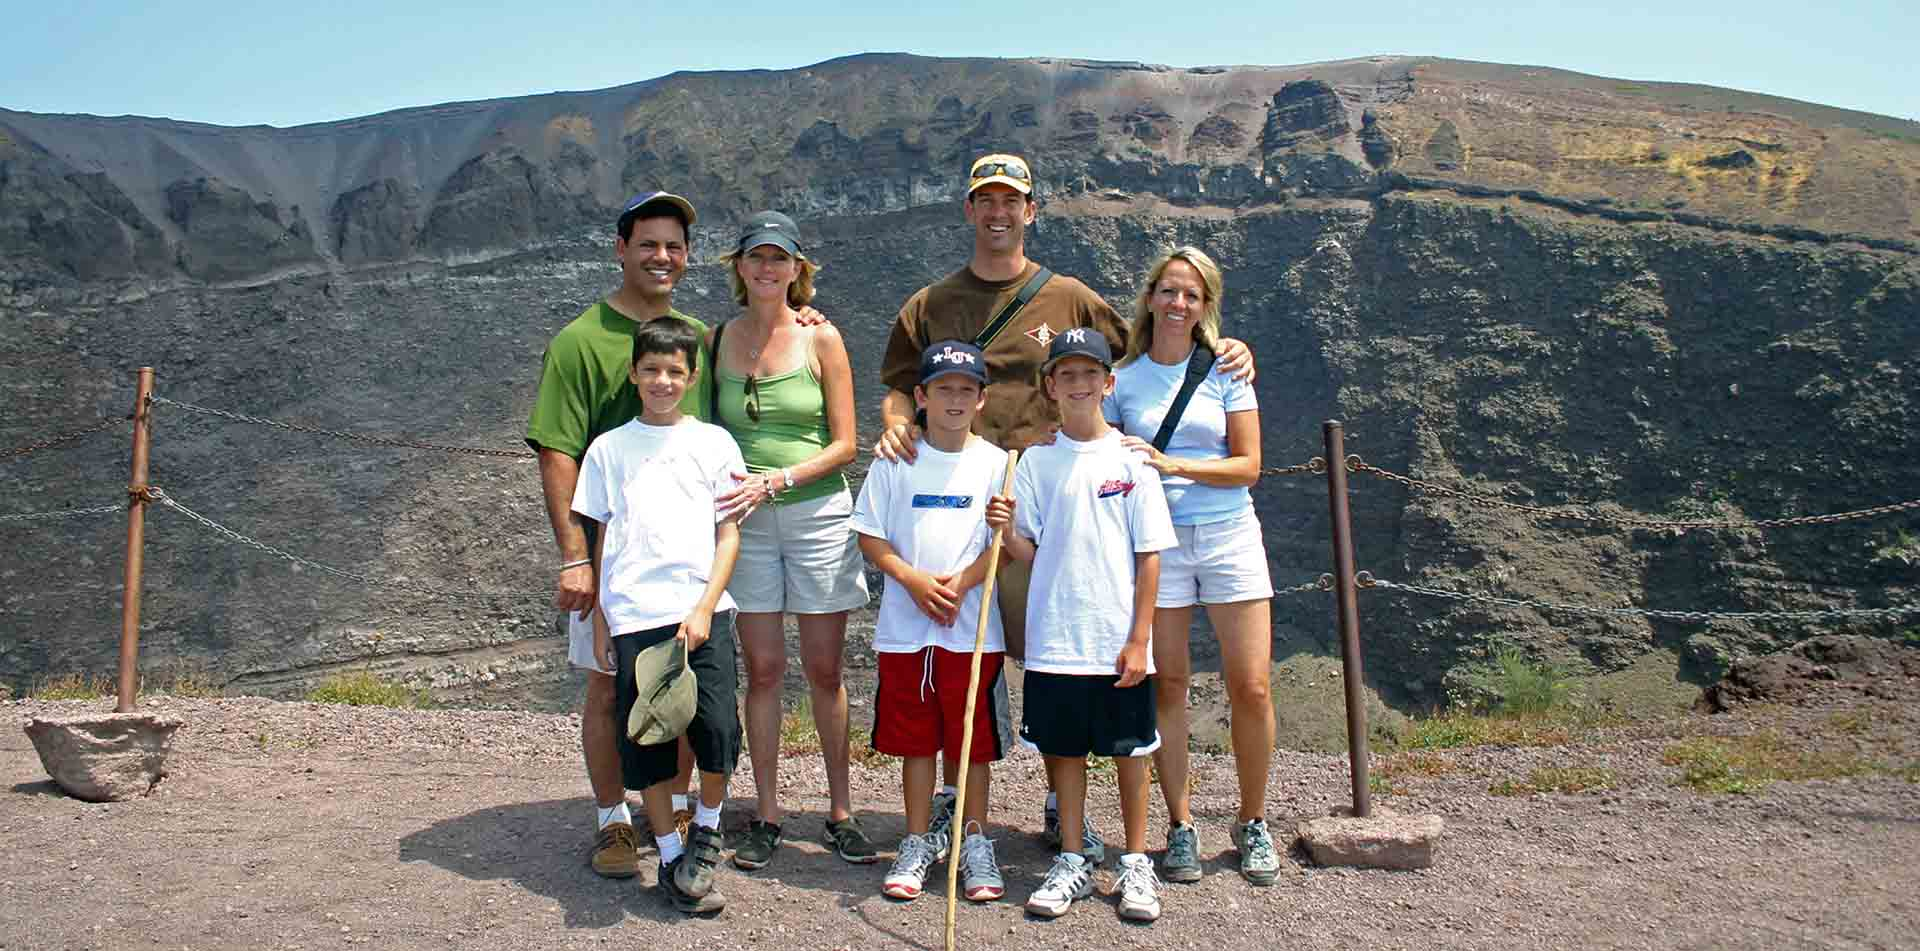 Europe Italy Amalfi Coast Naples family smiling in front of Mt Vesuvius - luxury vacation destinations